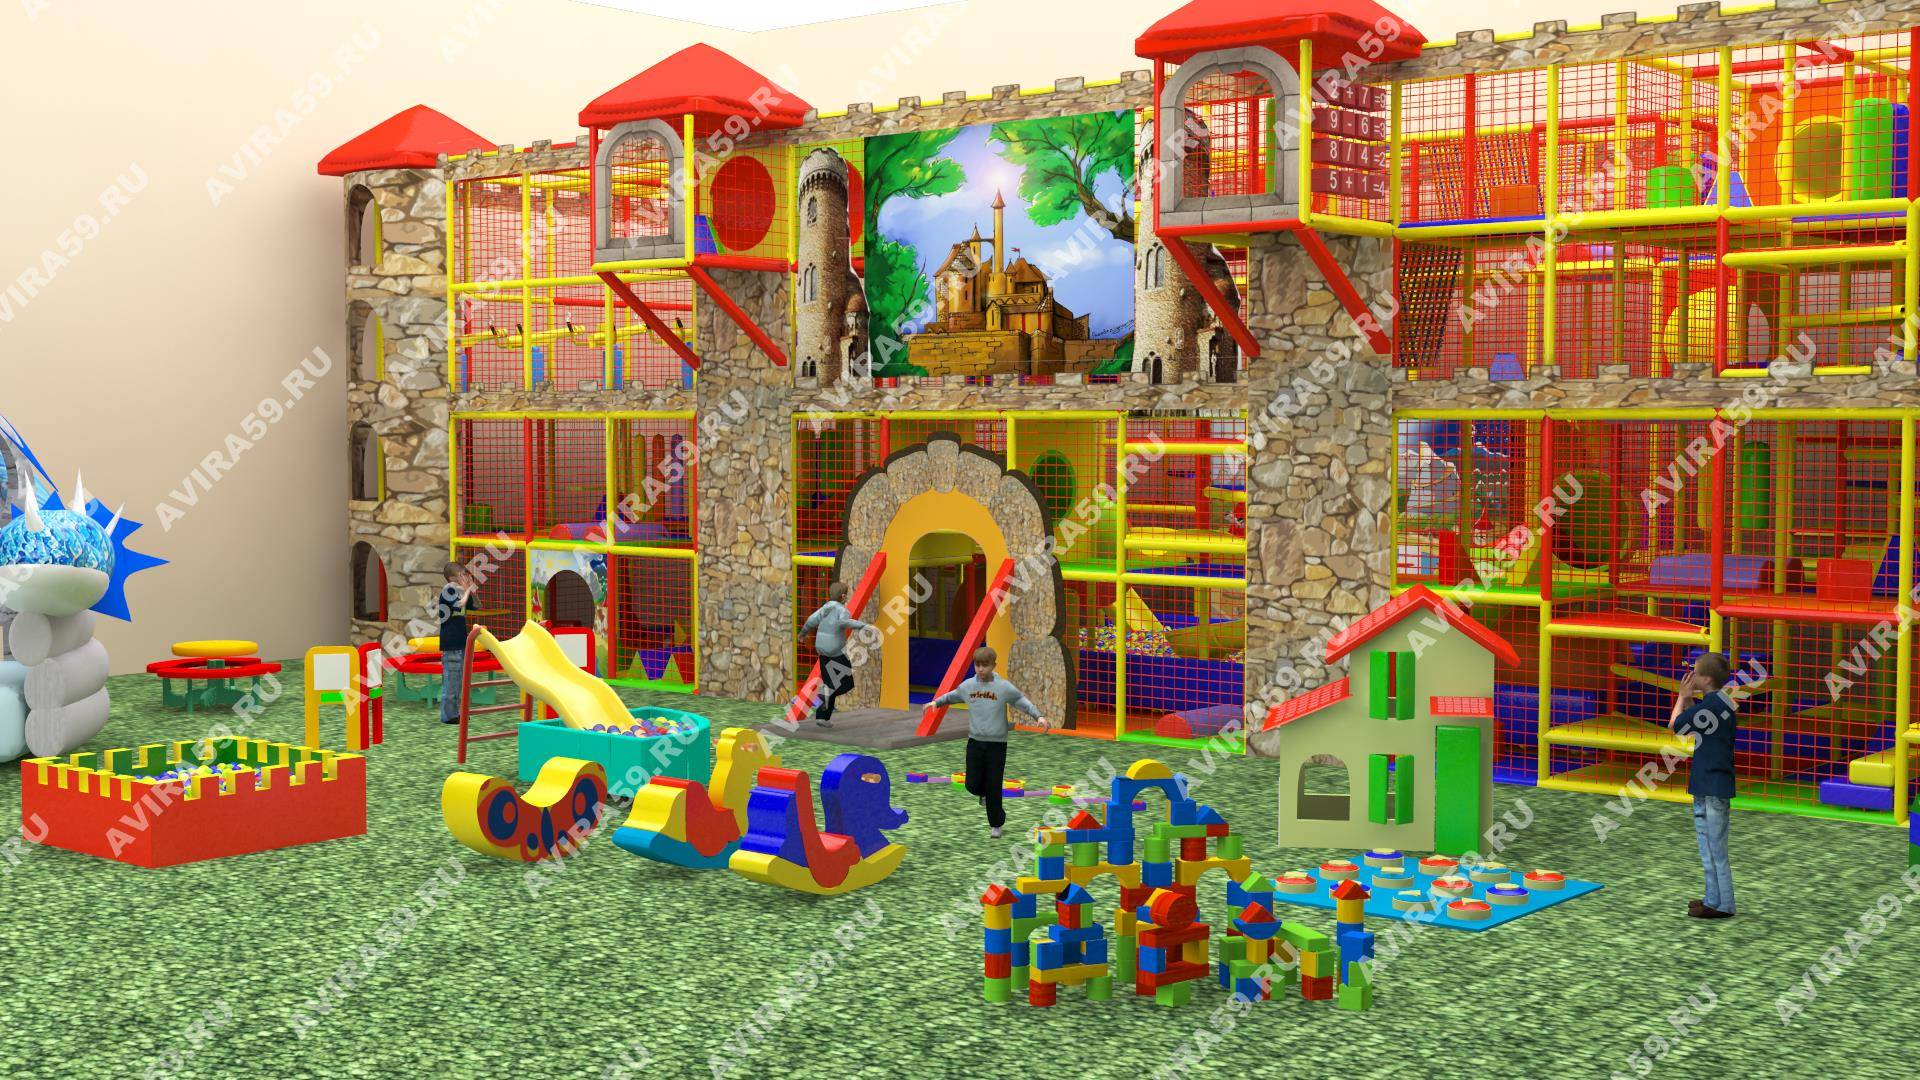 Indoor playground Magic Castle